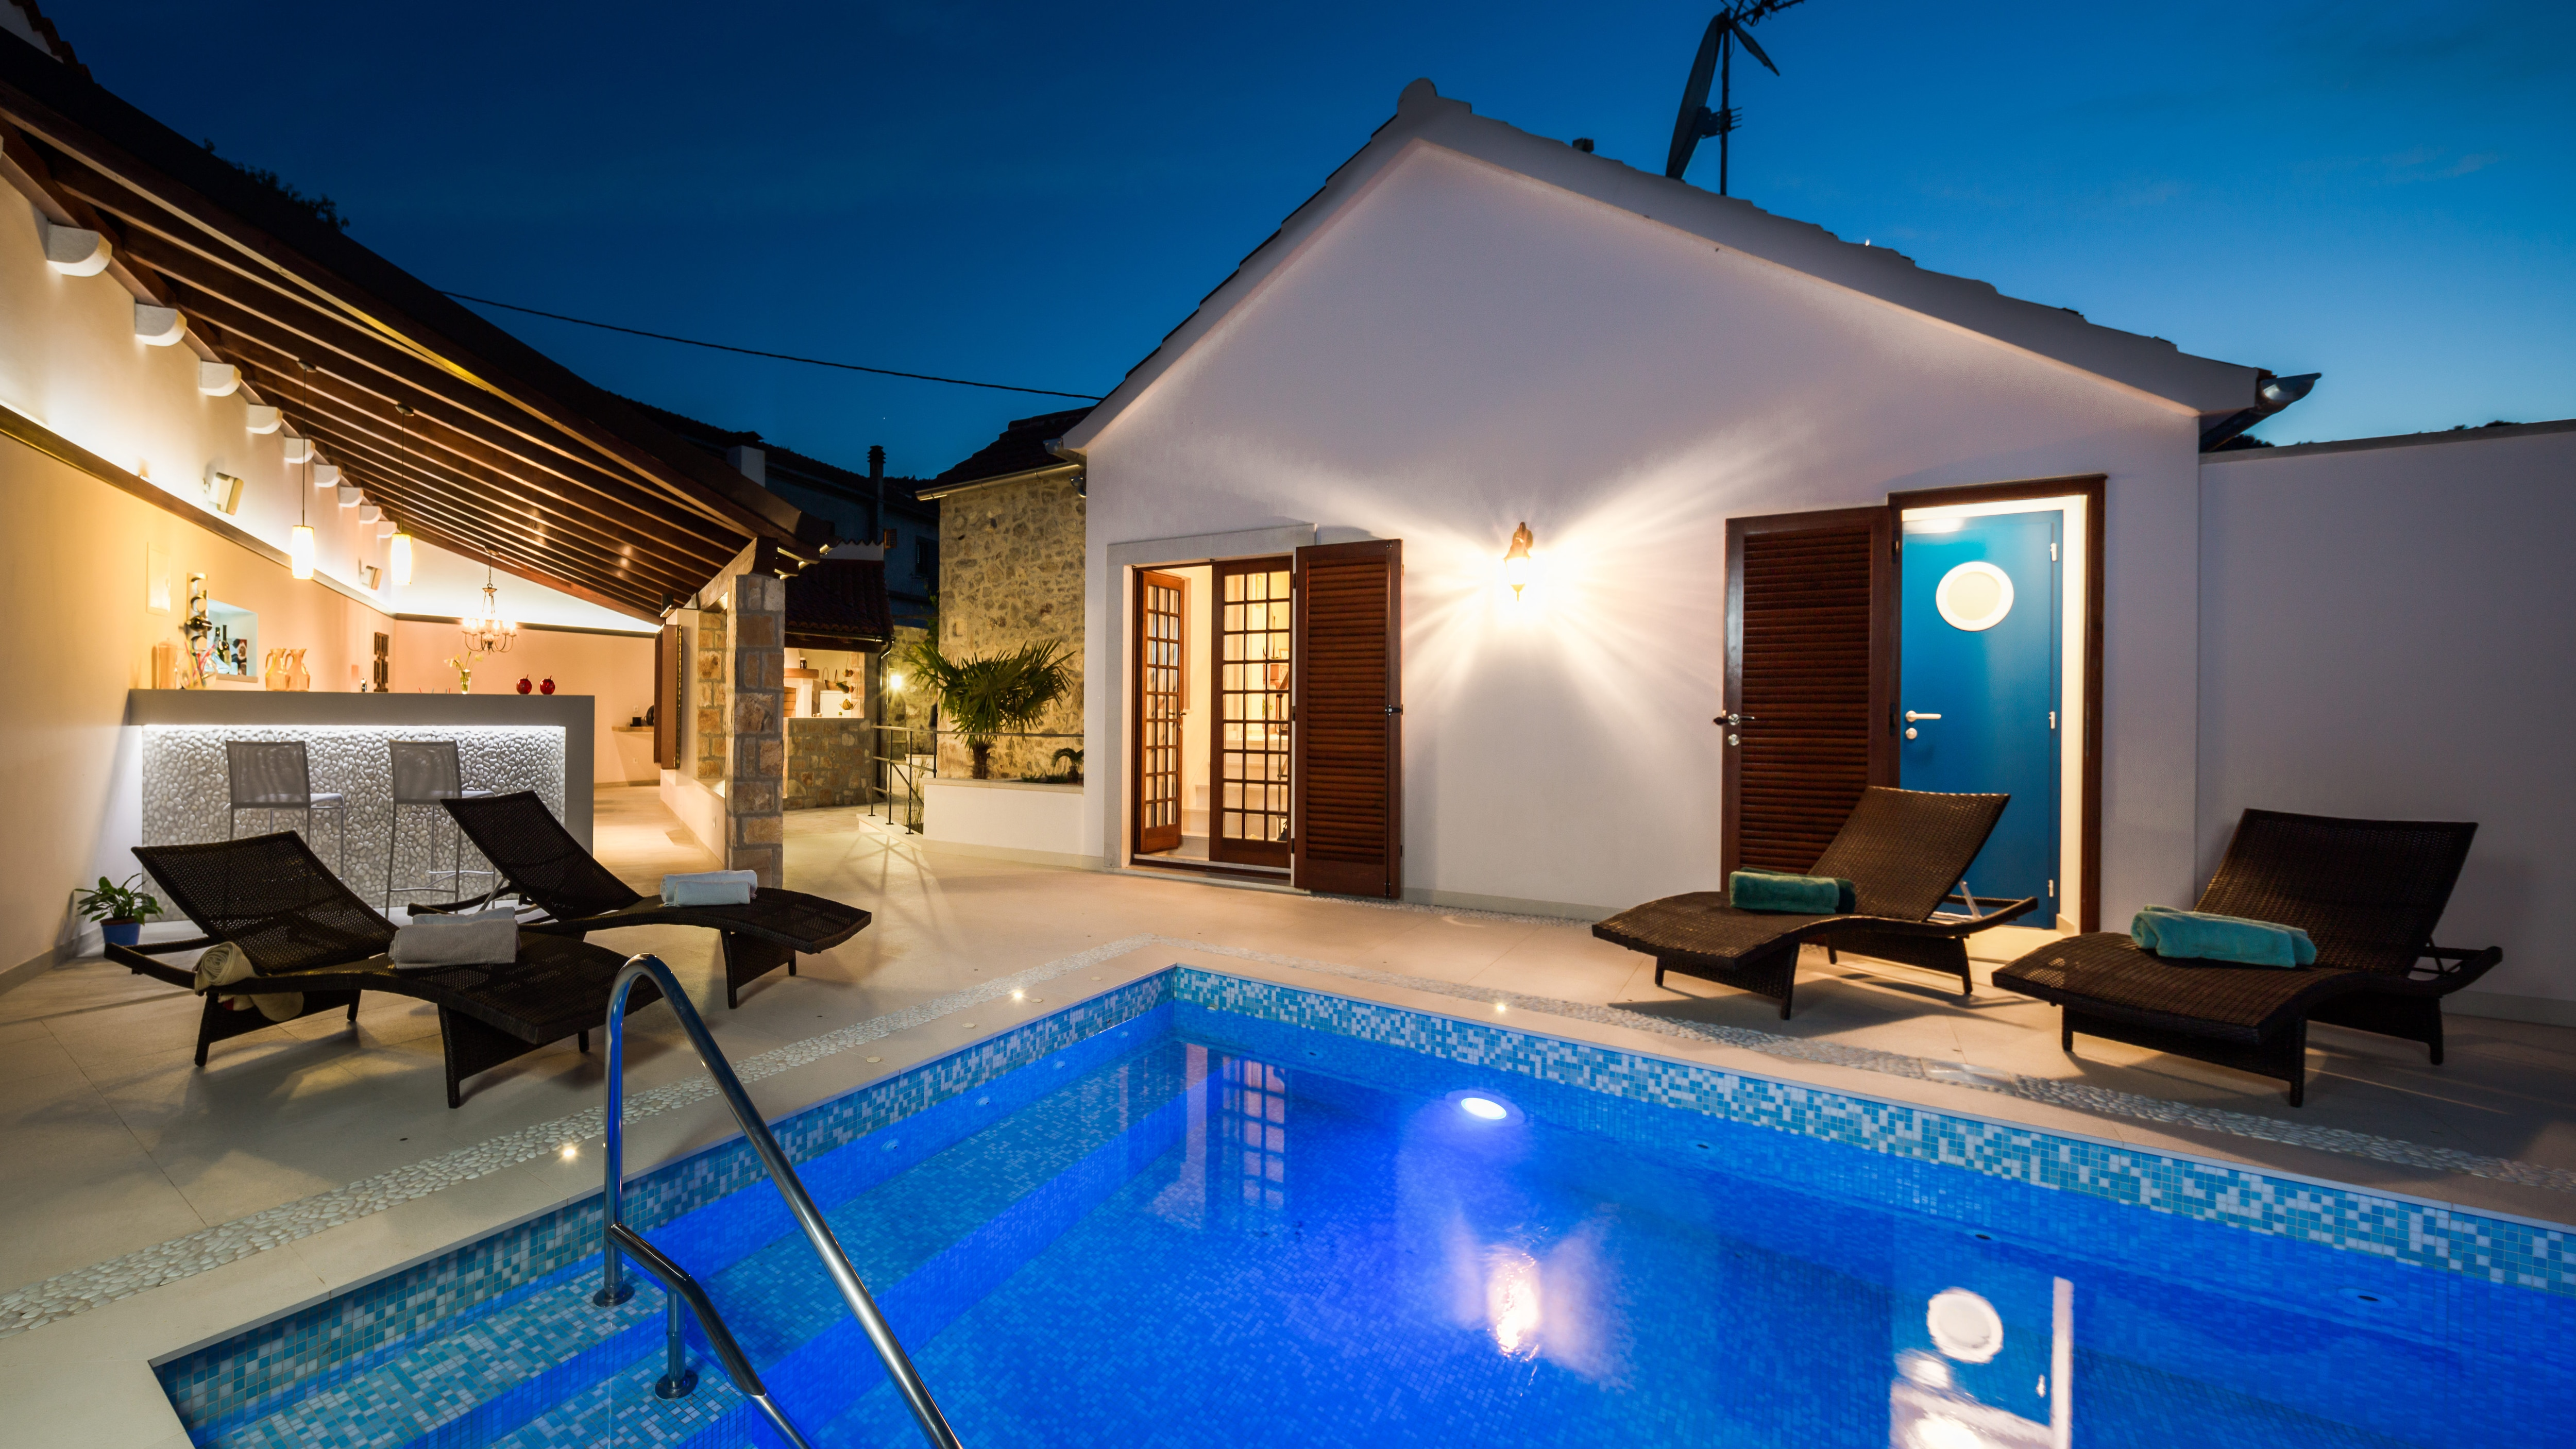 Property Image 2 - Tranquil Dalmatian Outdoor Living Villa with Heated Pool & Turkish Steam Bath Room